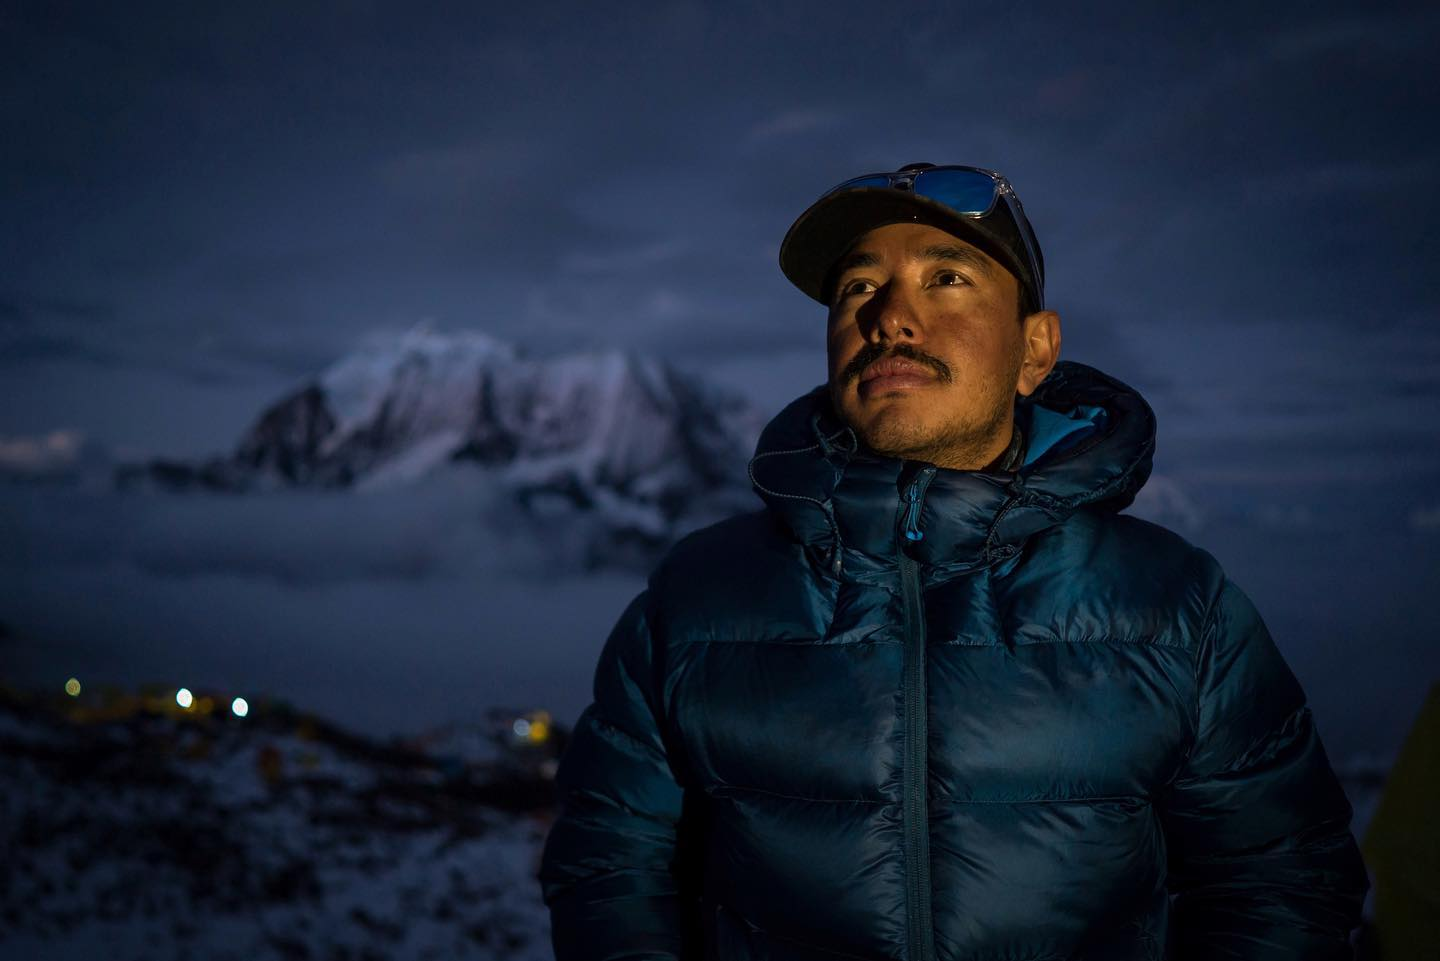 Photo of Nirmal Purja, l'alpinismo e i media